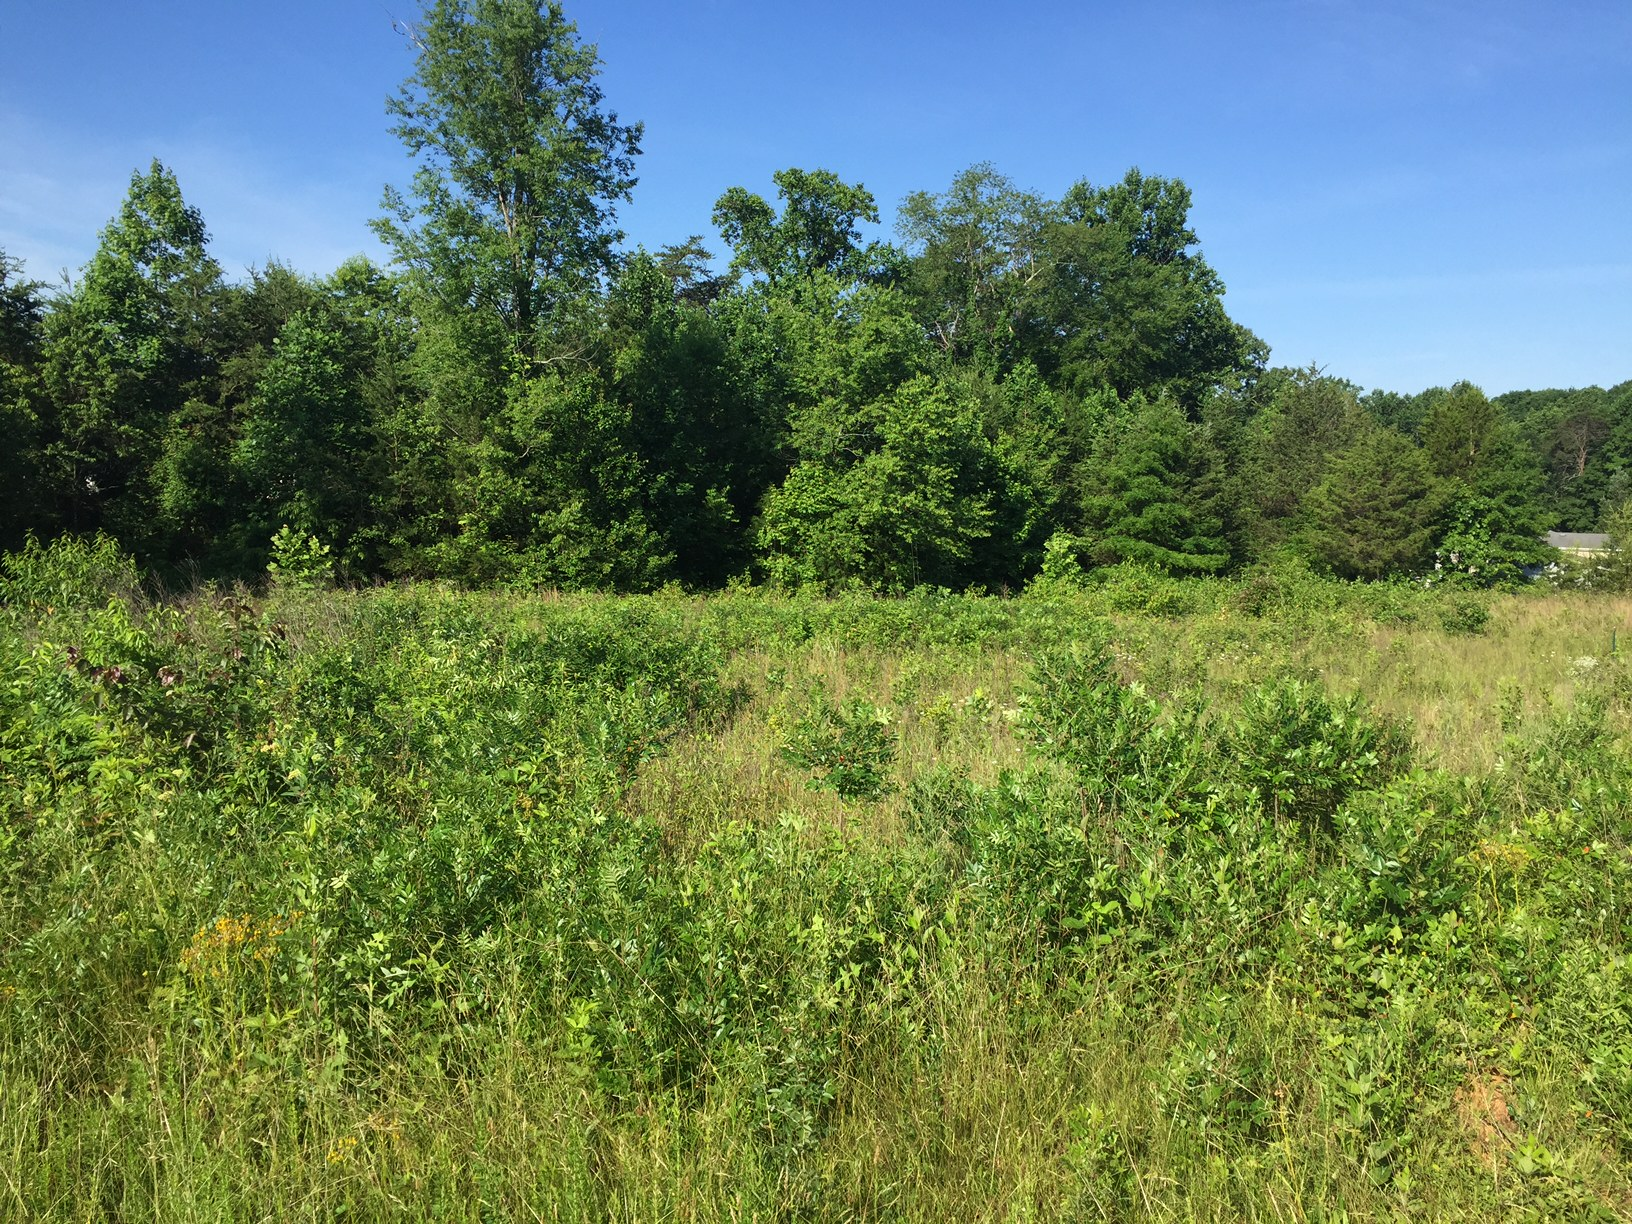 Building Lots in Danville, Sharon Meadows, Lot 56A